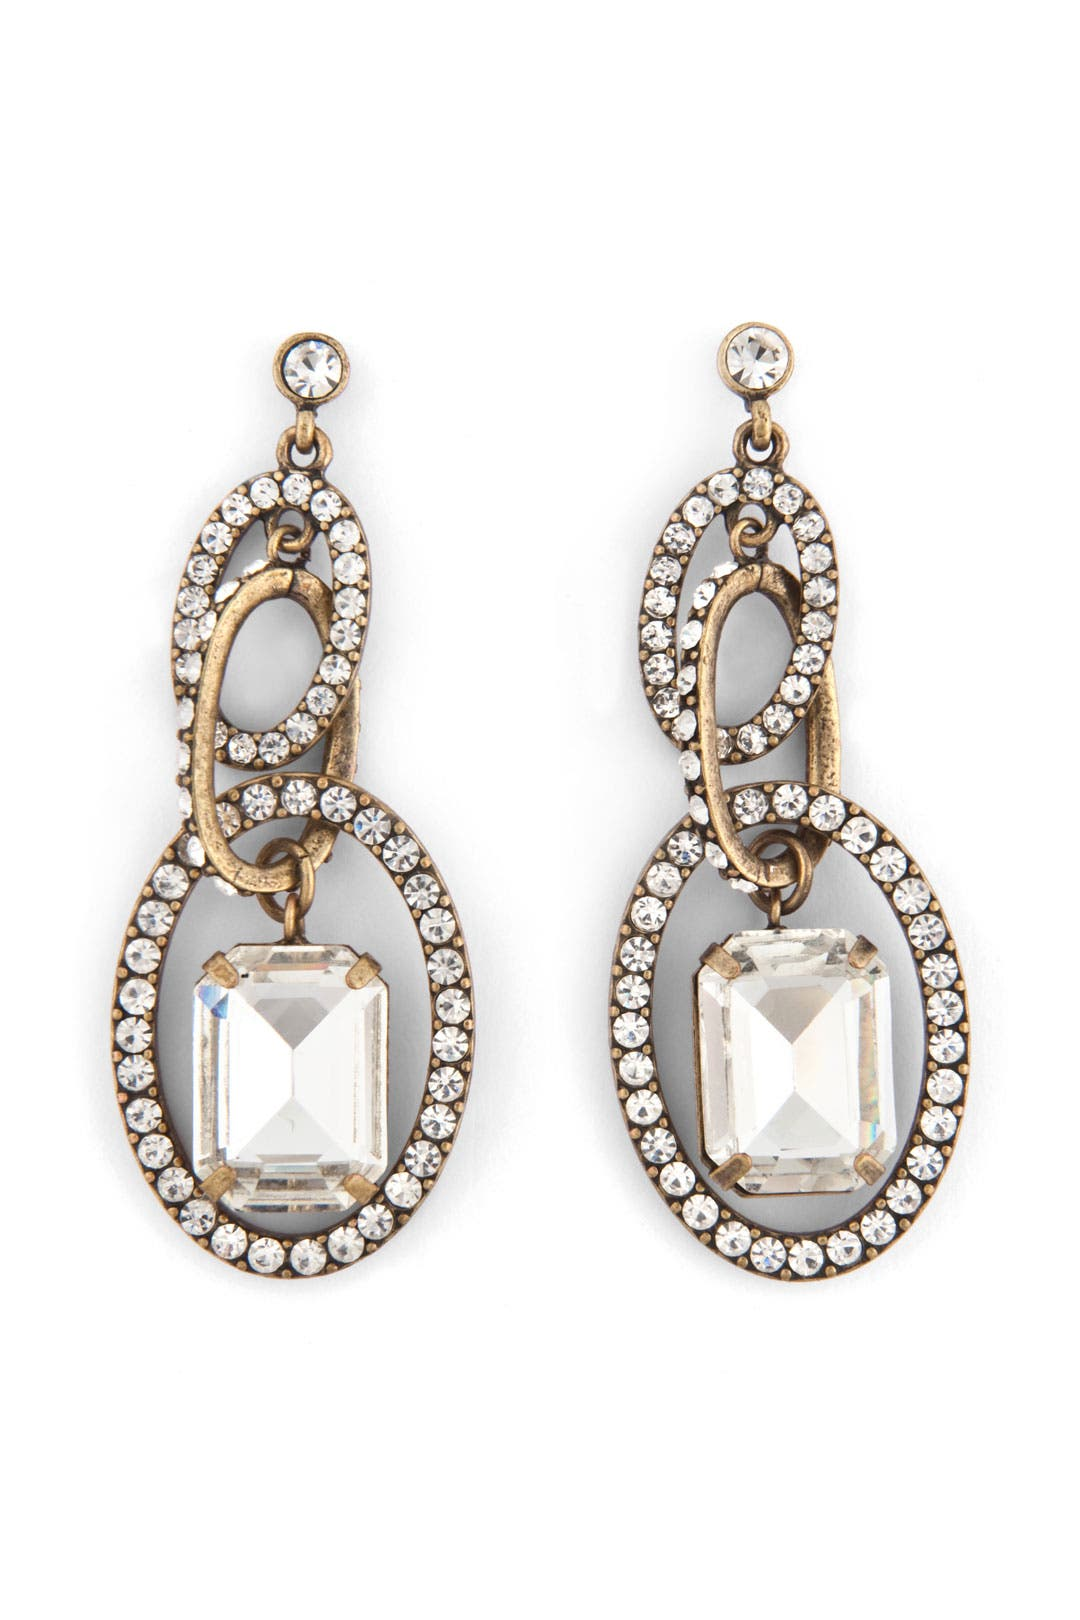 Crystal Hoopla Earrings by RJ Graziano